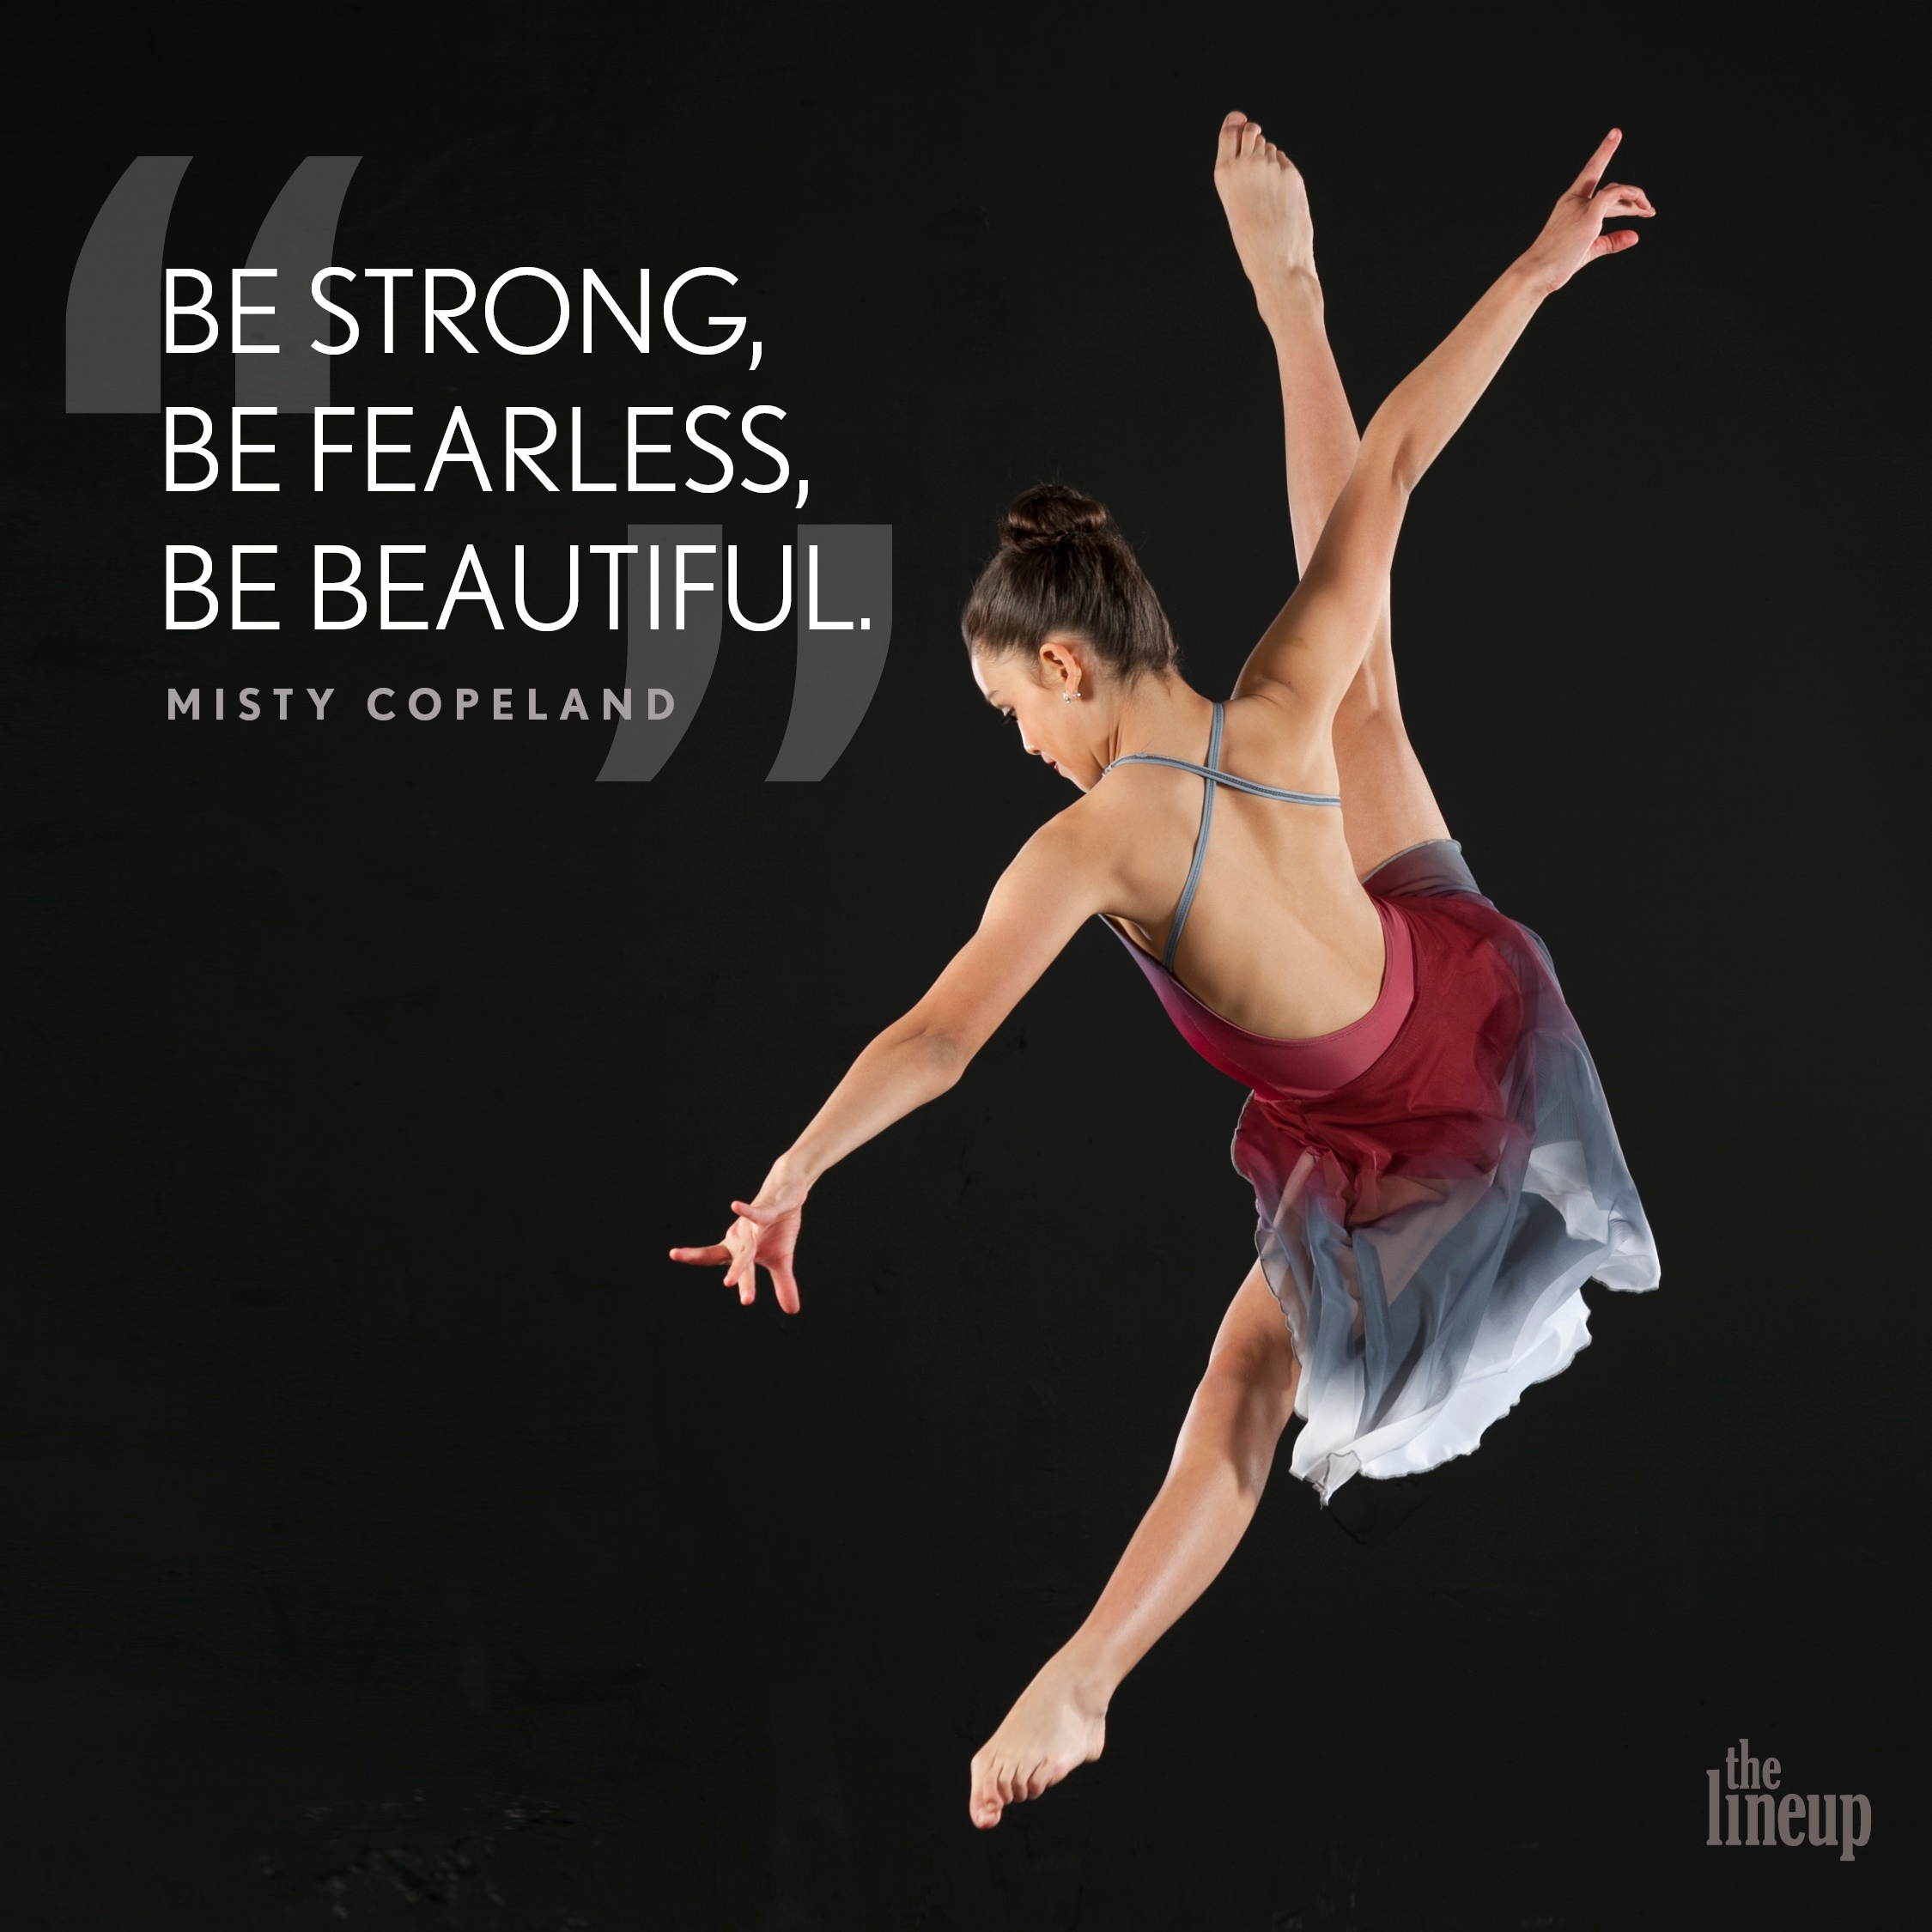 """""""Be strong, be fearless, be beautiful."""" - Misty Copeland Motivational Quotes for Dancers"""